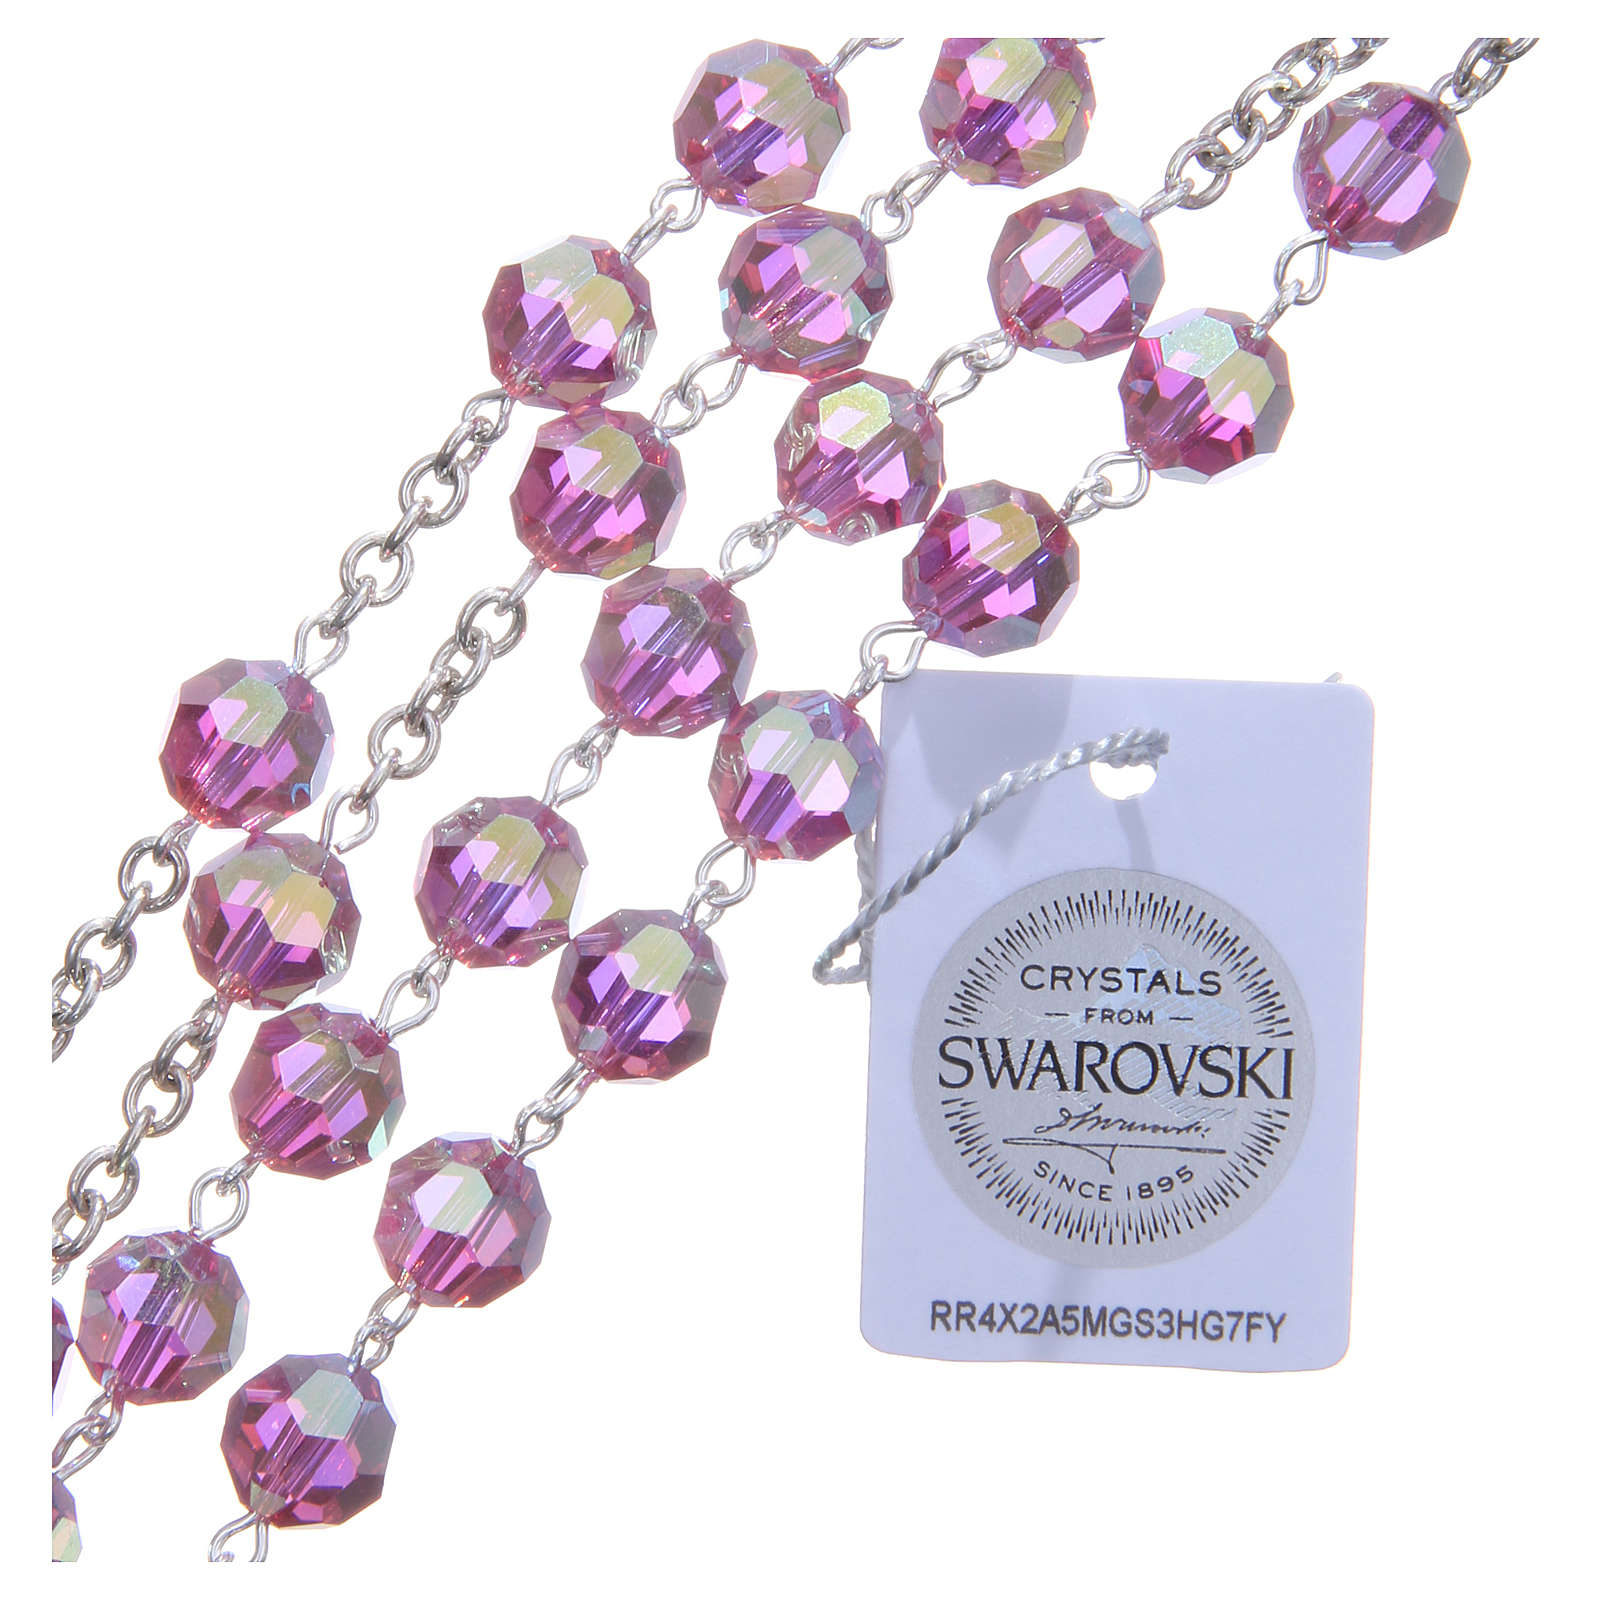 Rosary in 800 silver and pink Swarowski crystal grains measuring 8mm 4